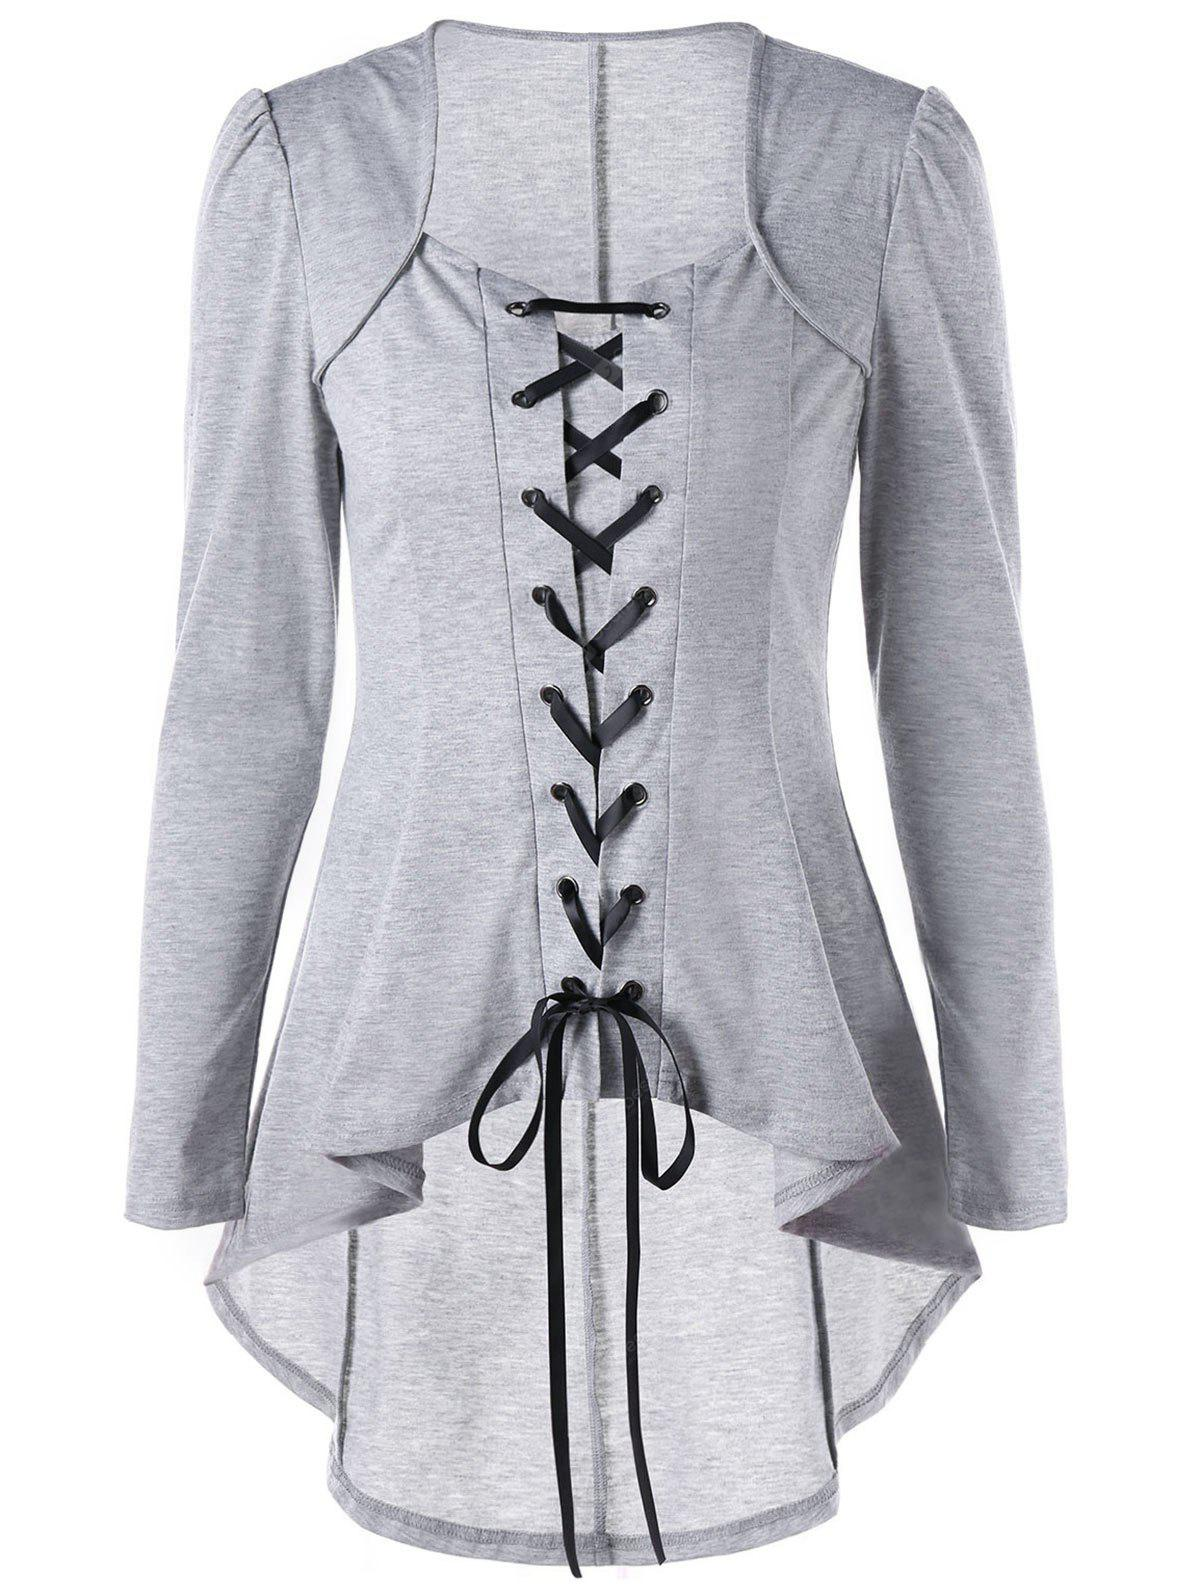 Lace Up High Low Gothic Top